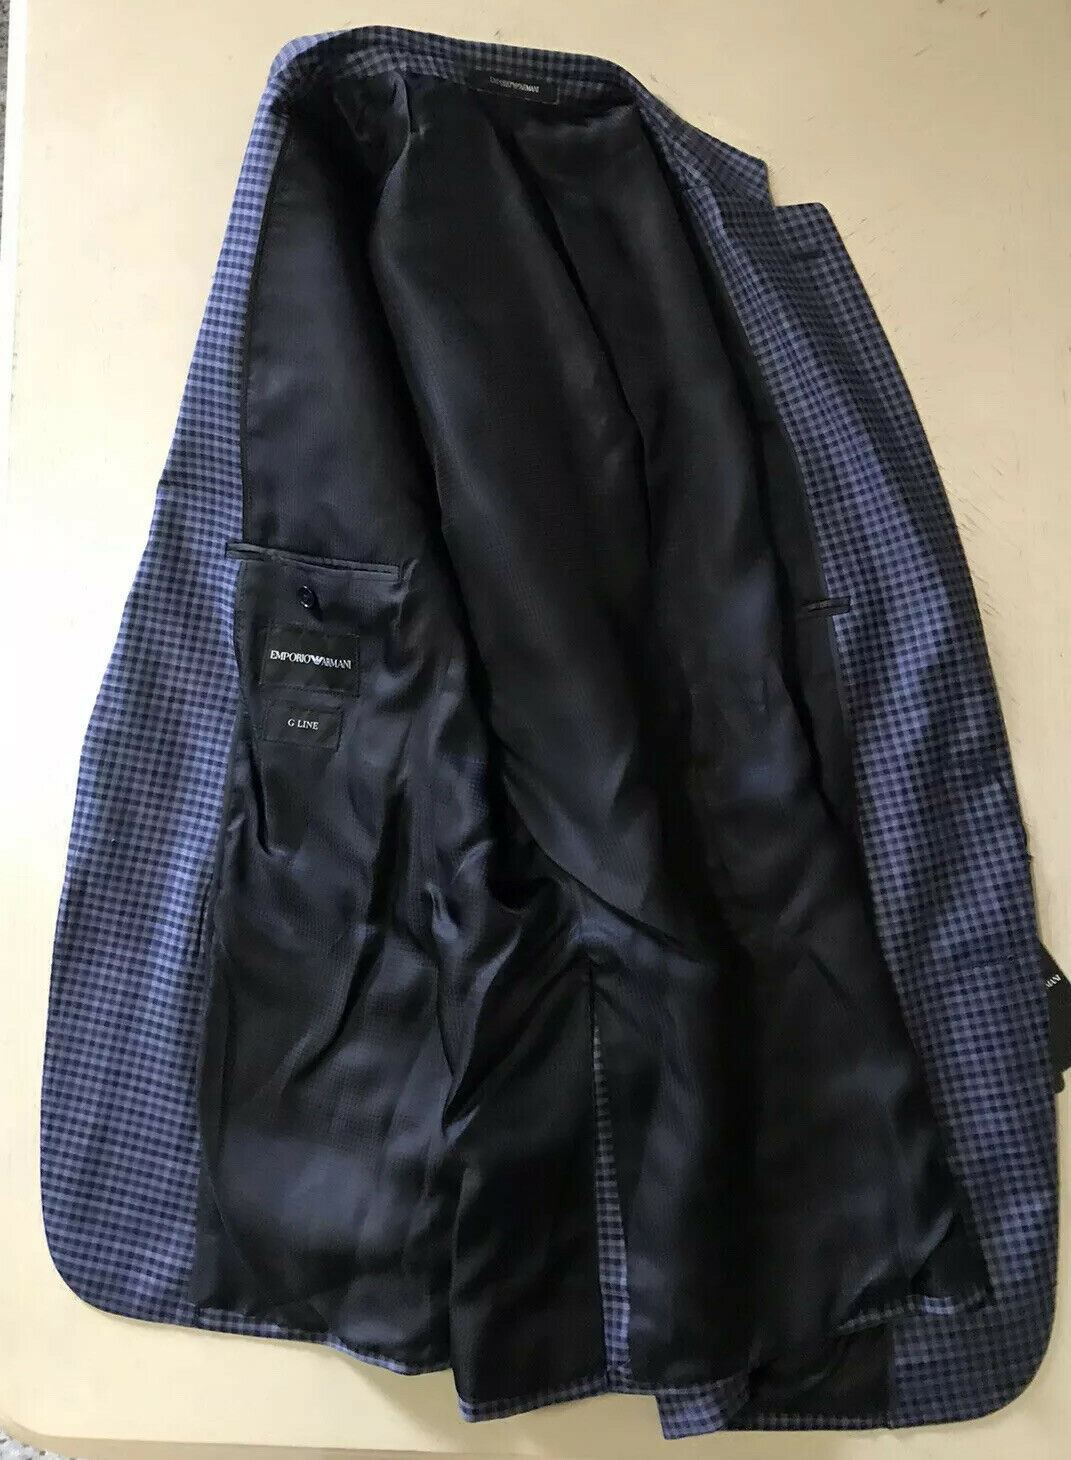 NWT $1495 Emporio Armani Super 130S Wool Coat Jacket Blazer Blue 40R US/50R Eu